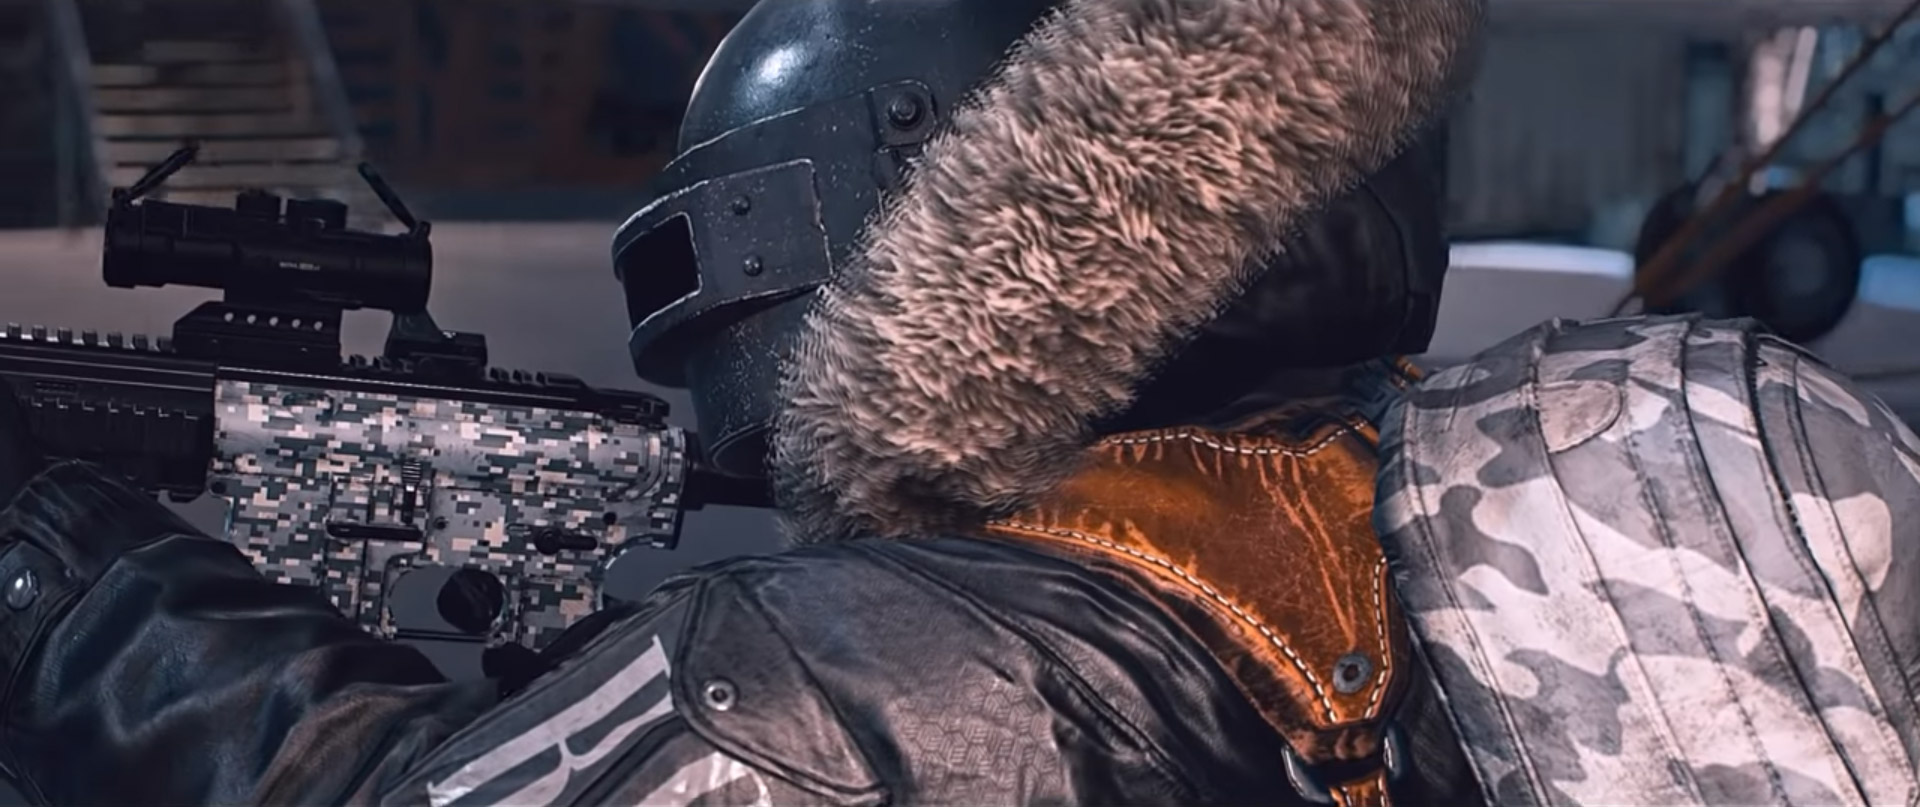 PUBG is going 'beyond battle royale' with a new story-focused game screenshot